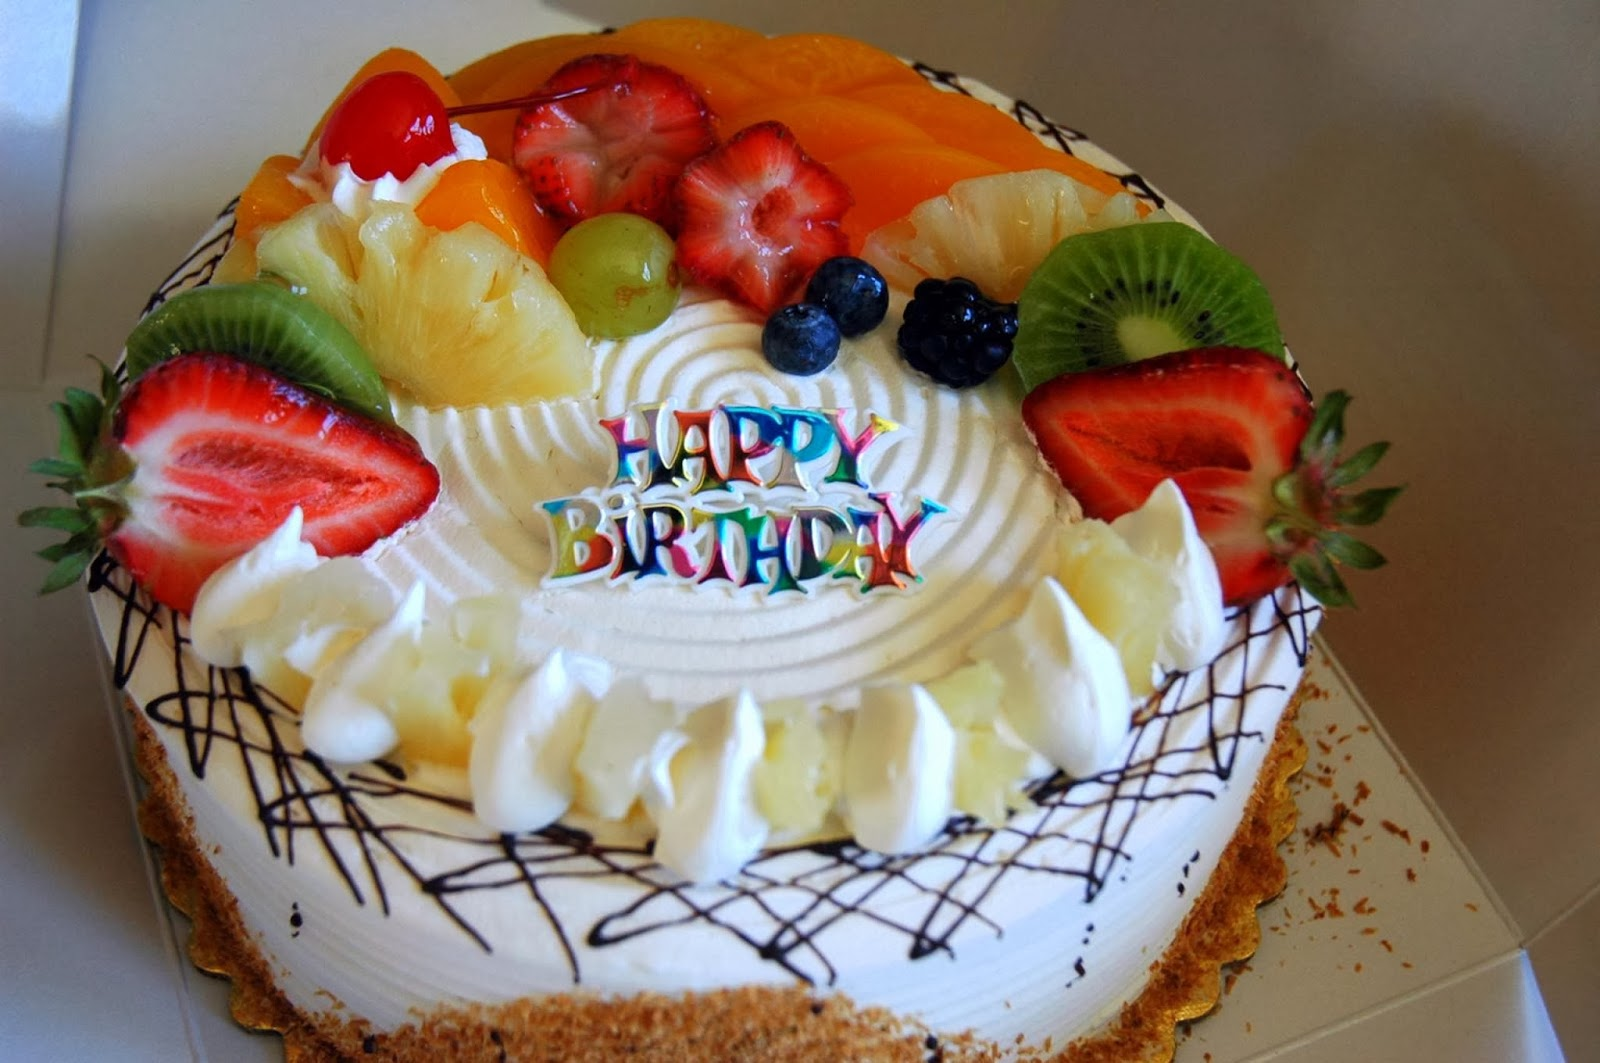 Happy-Birthday-Cake-Wishes-Image-HD